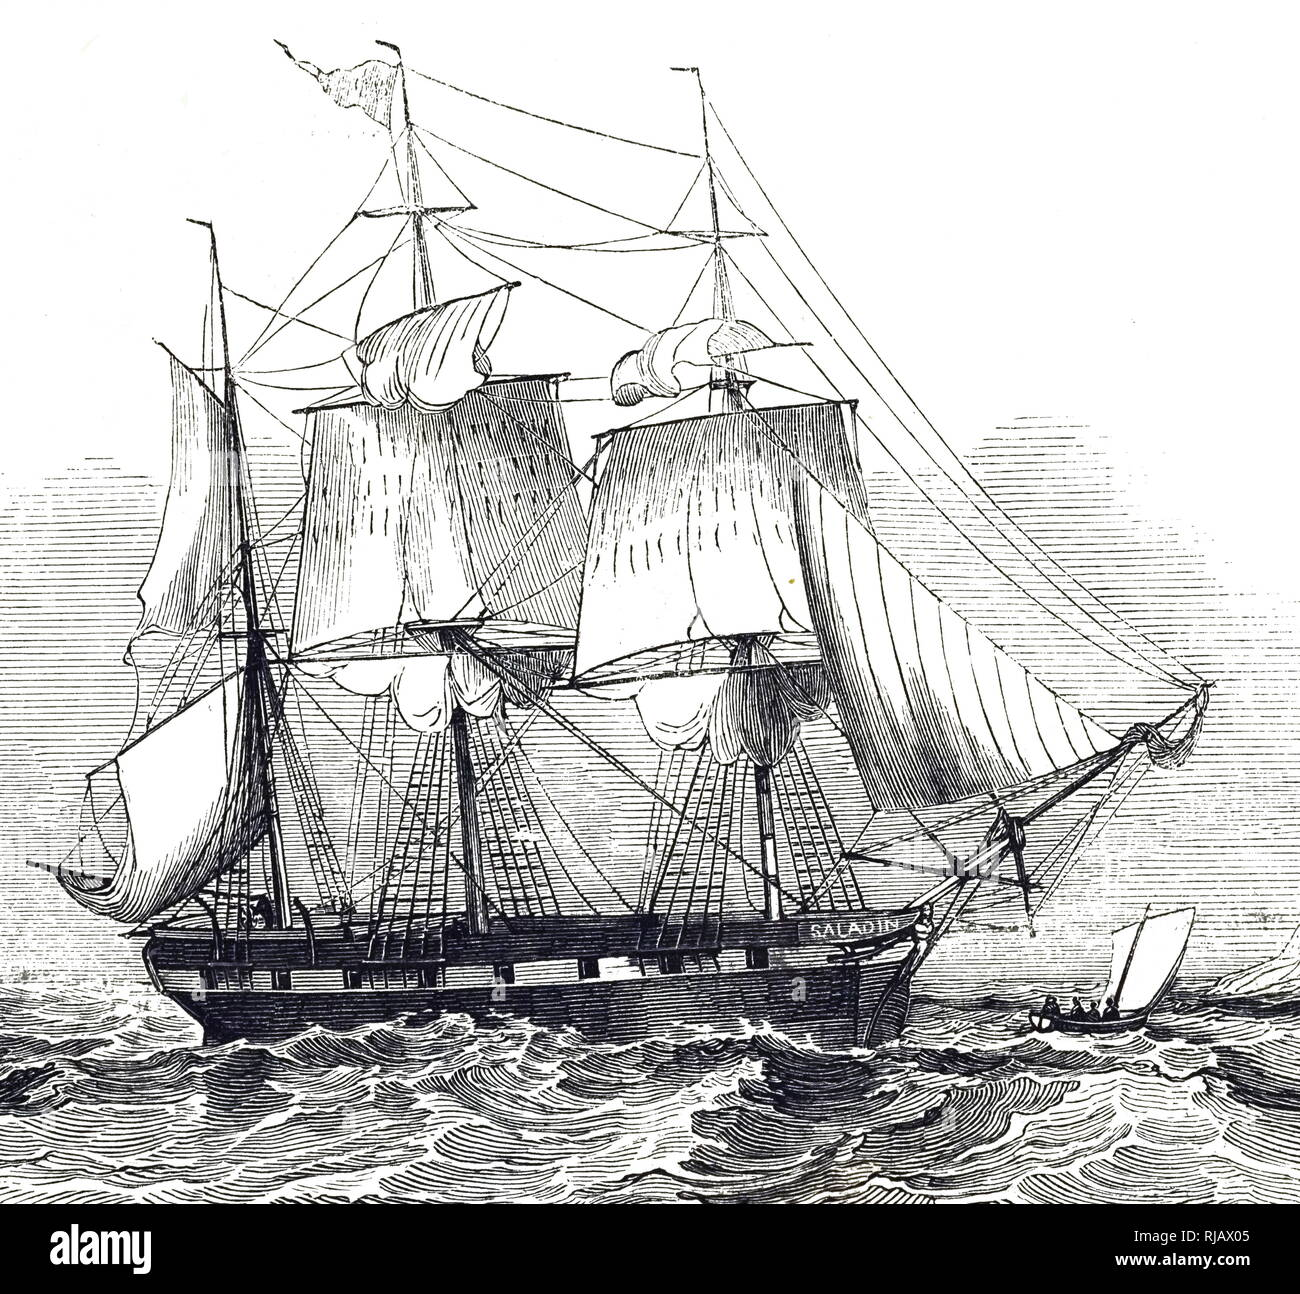 An engraving depicting the Saladin a British barque that made voyages between Britain and the coast of Peru, carrying shipments of guano. Dated 19th century - Stock Image